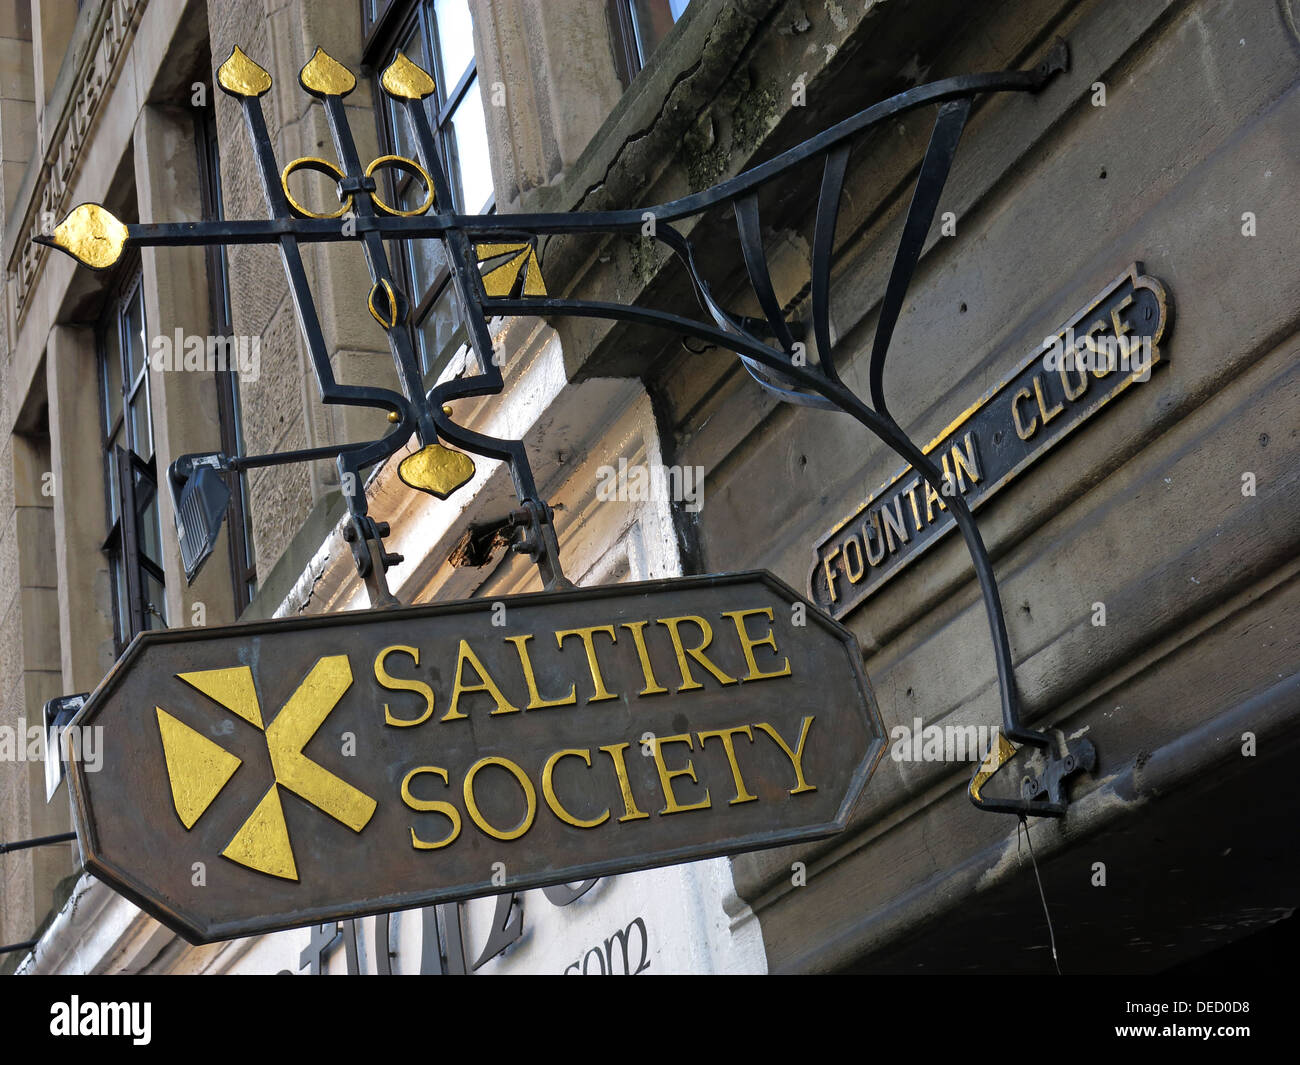 Saltire Society sign & office Fountain Close high st Royal Mile Edinburgh city Scotland Uk - Stock Image